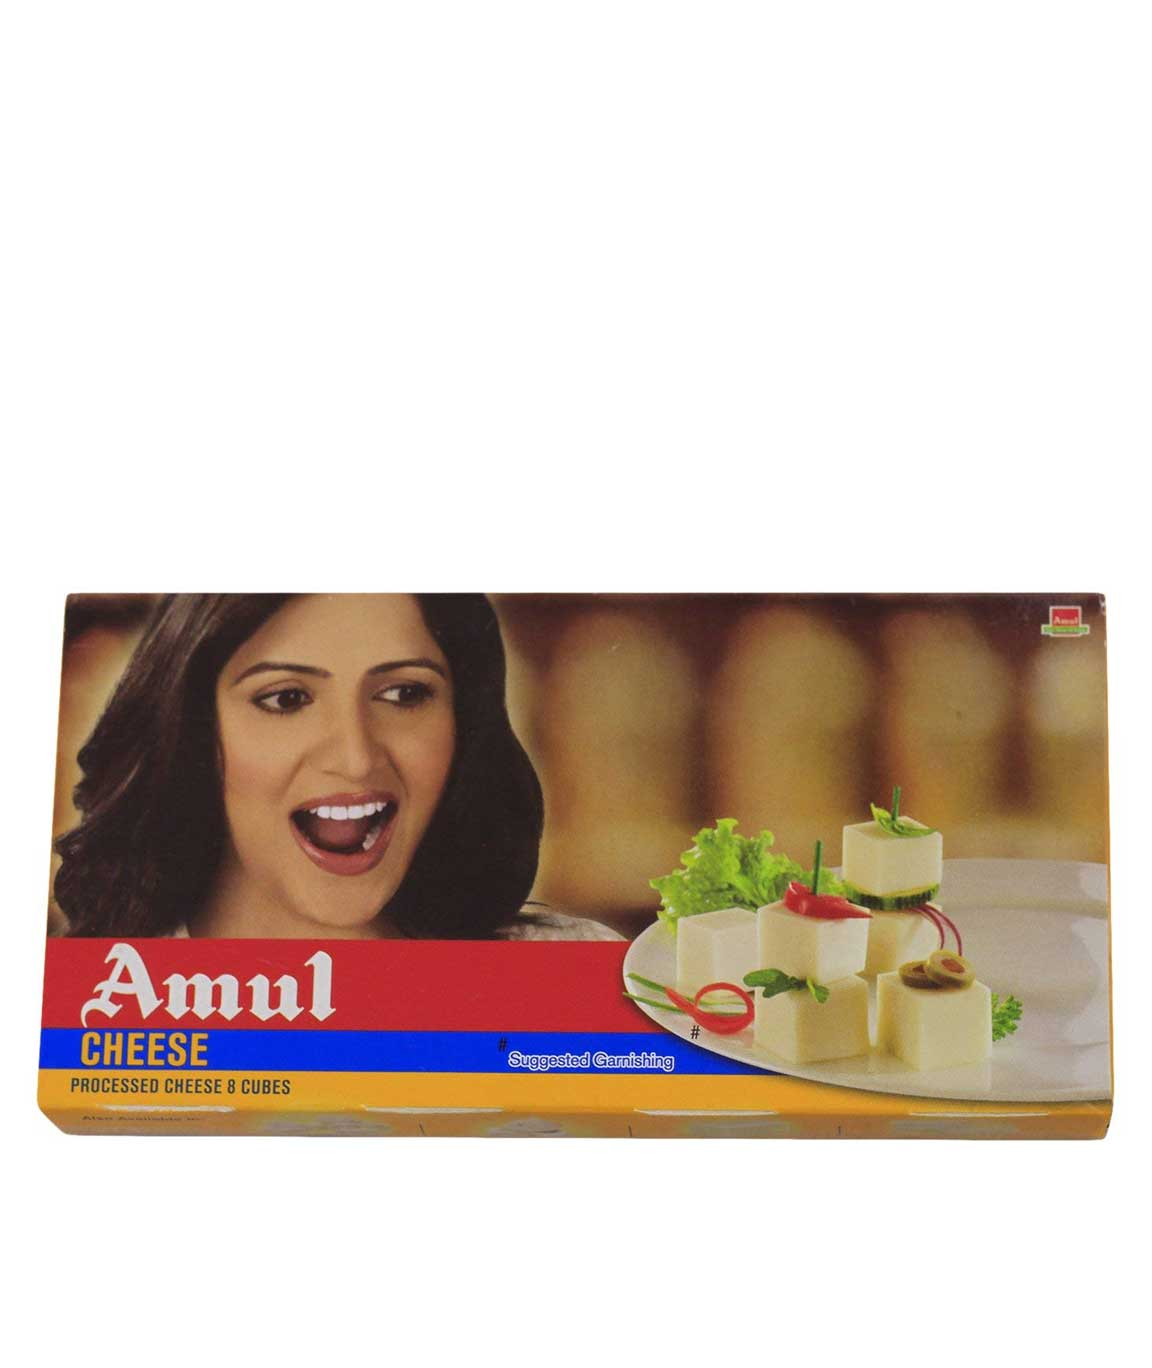 Amul Cheese - Cubes, 200g Pack